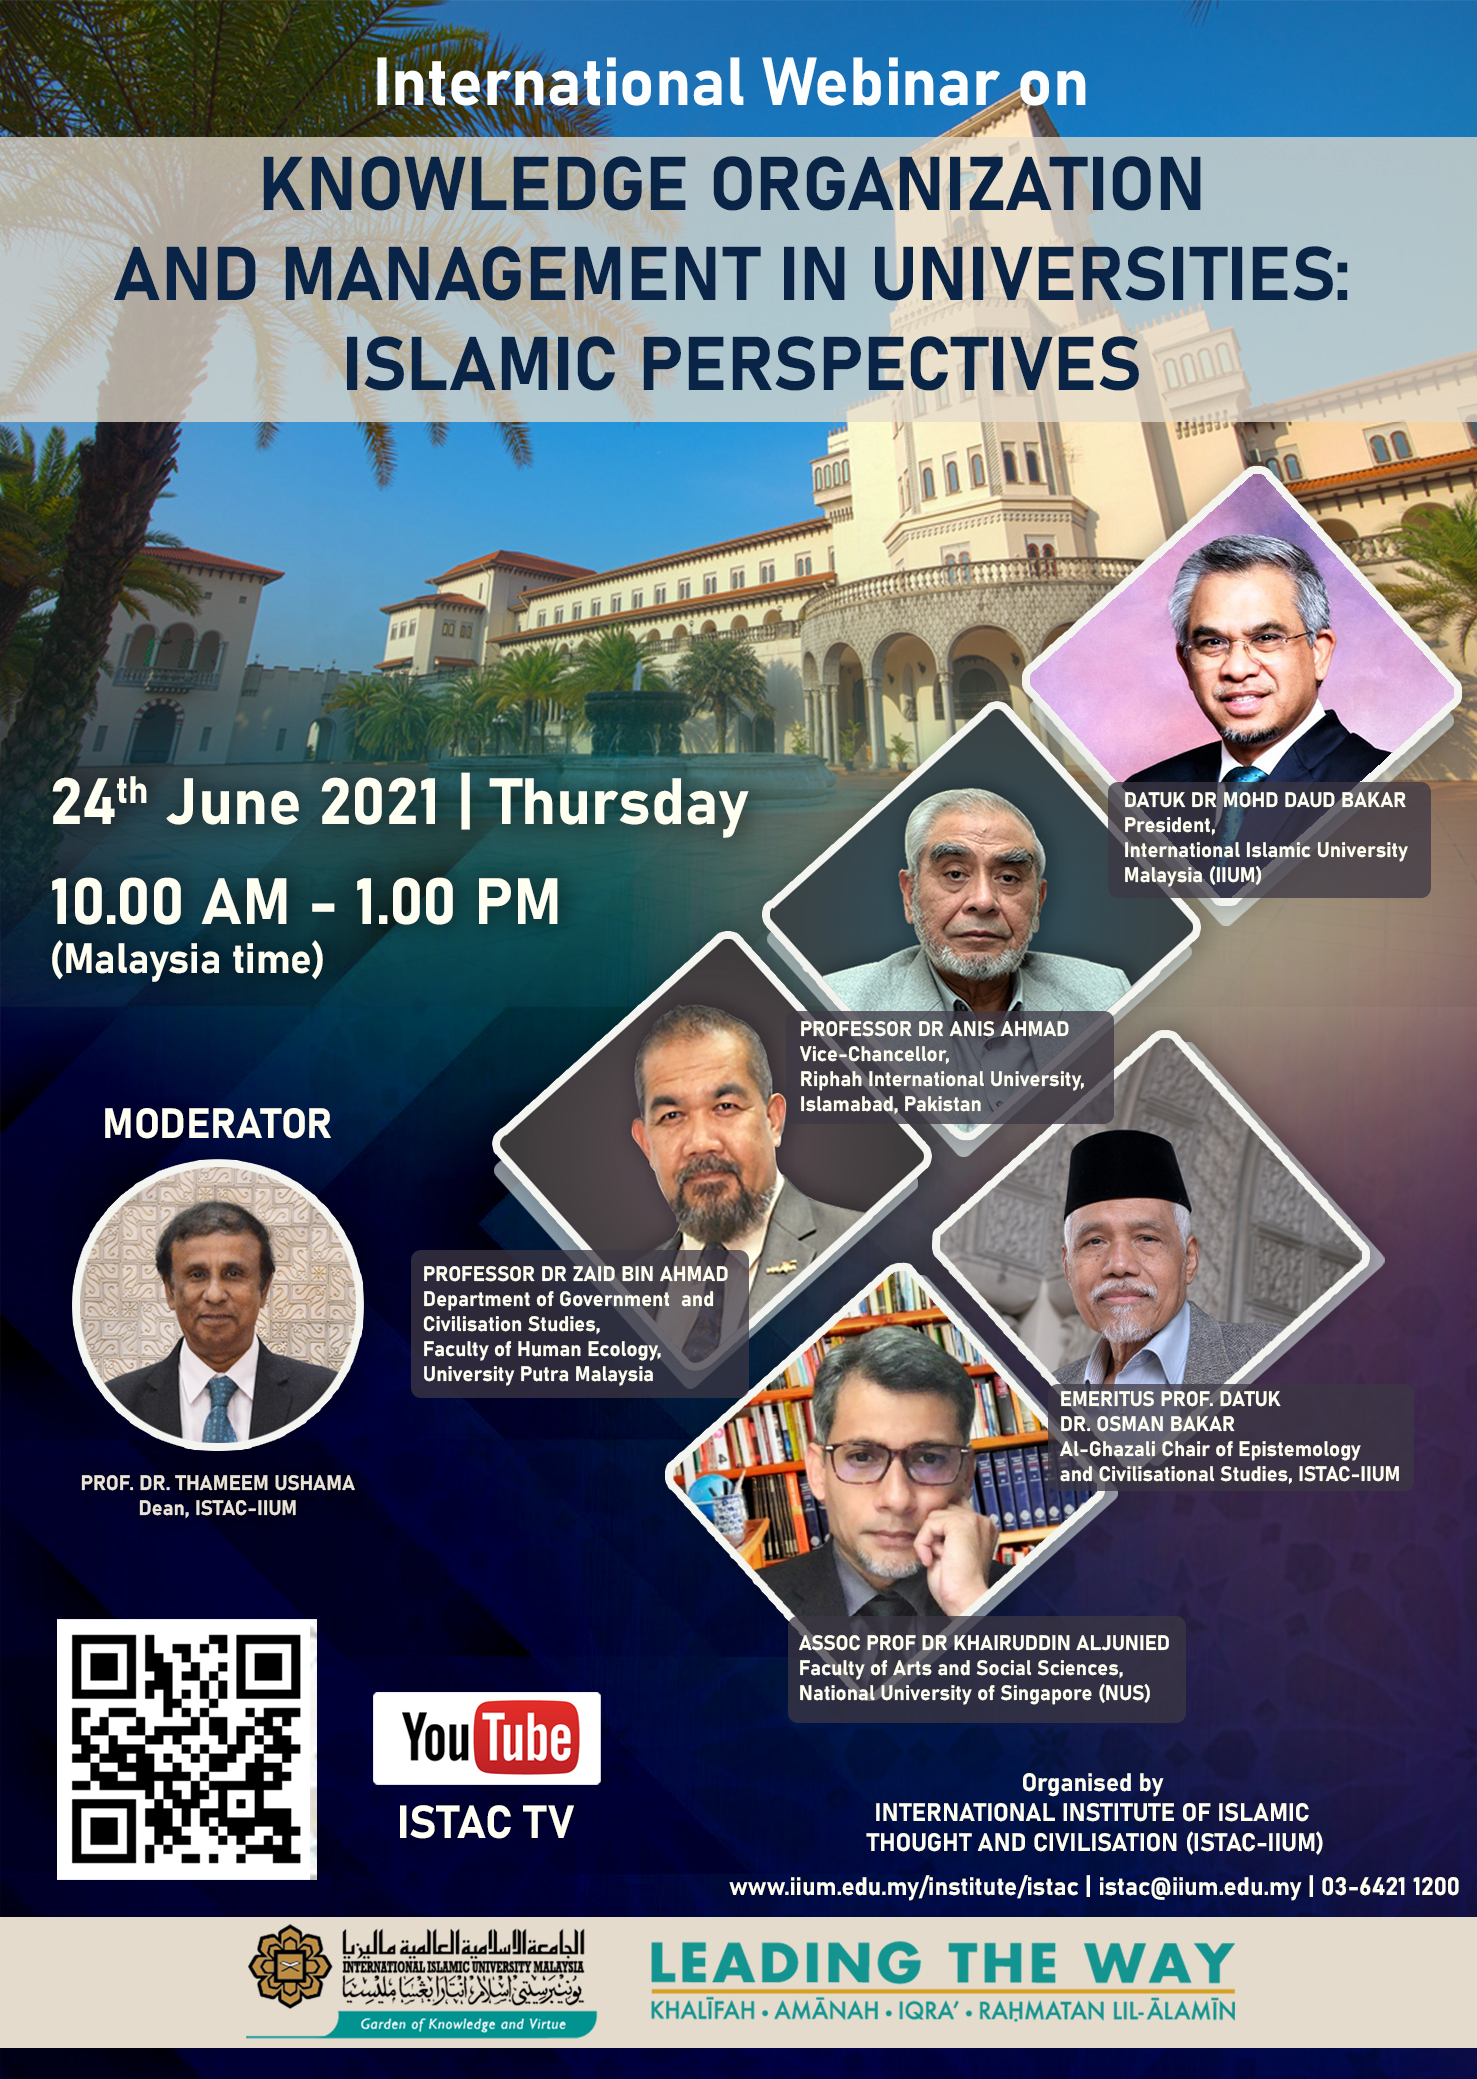 INTERNATIONAL WEBINAR ON KNOWLEDGE ORGANIZATION  AND MANAGEMENT IN UNIVERSITIES:  ISLAMIC PERSPECTIVES